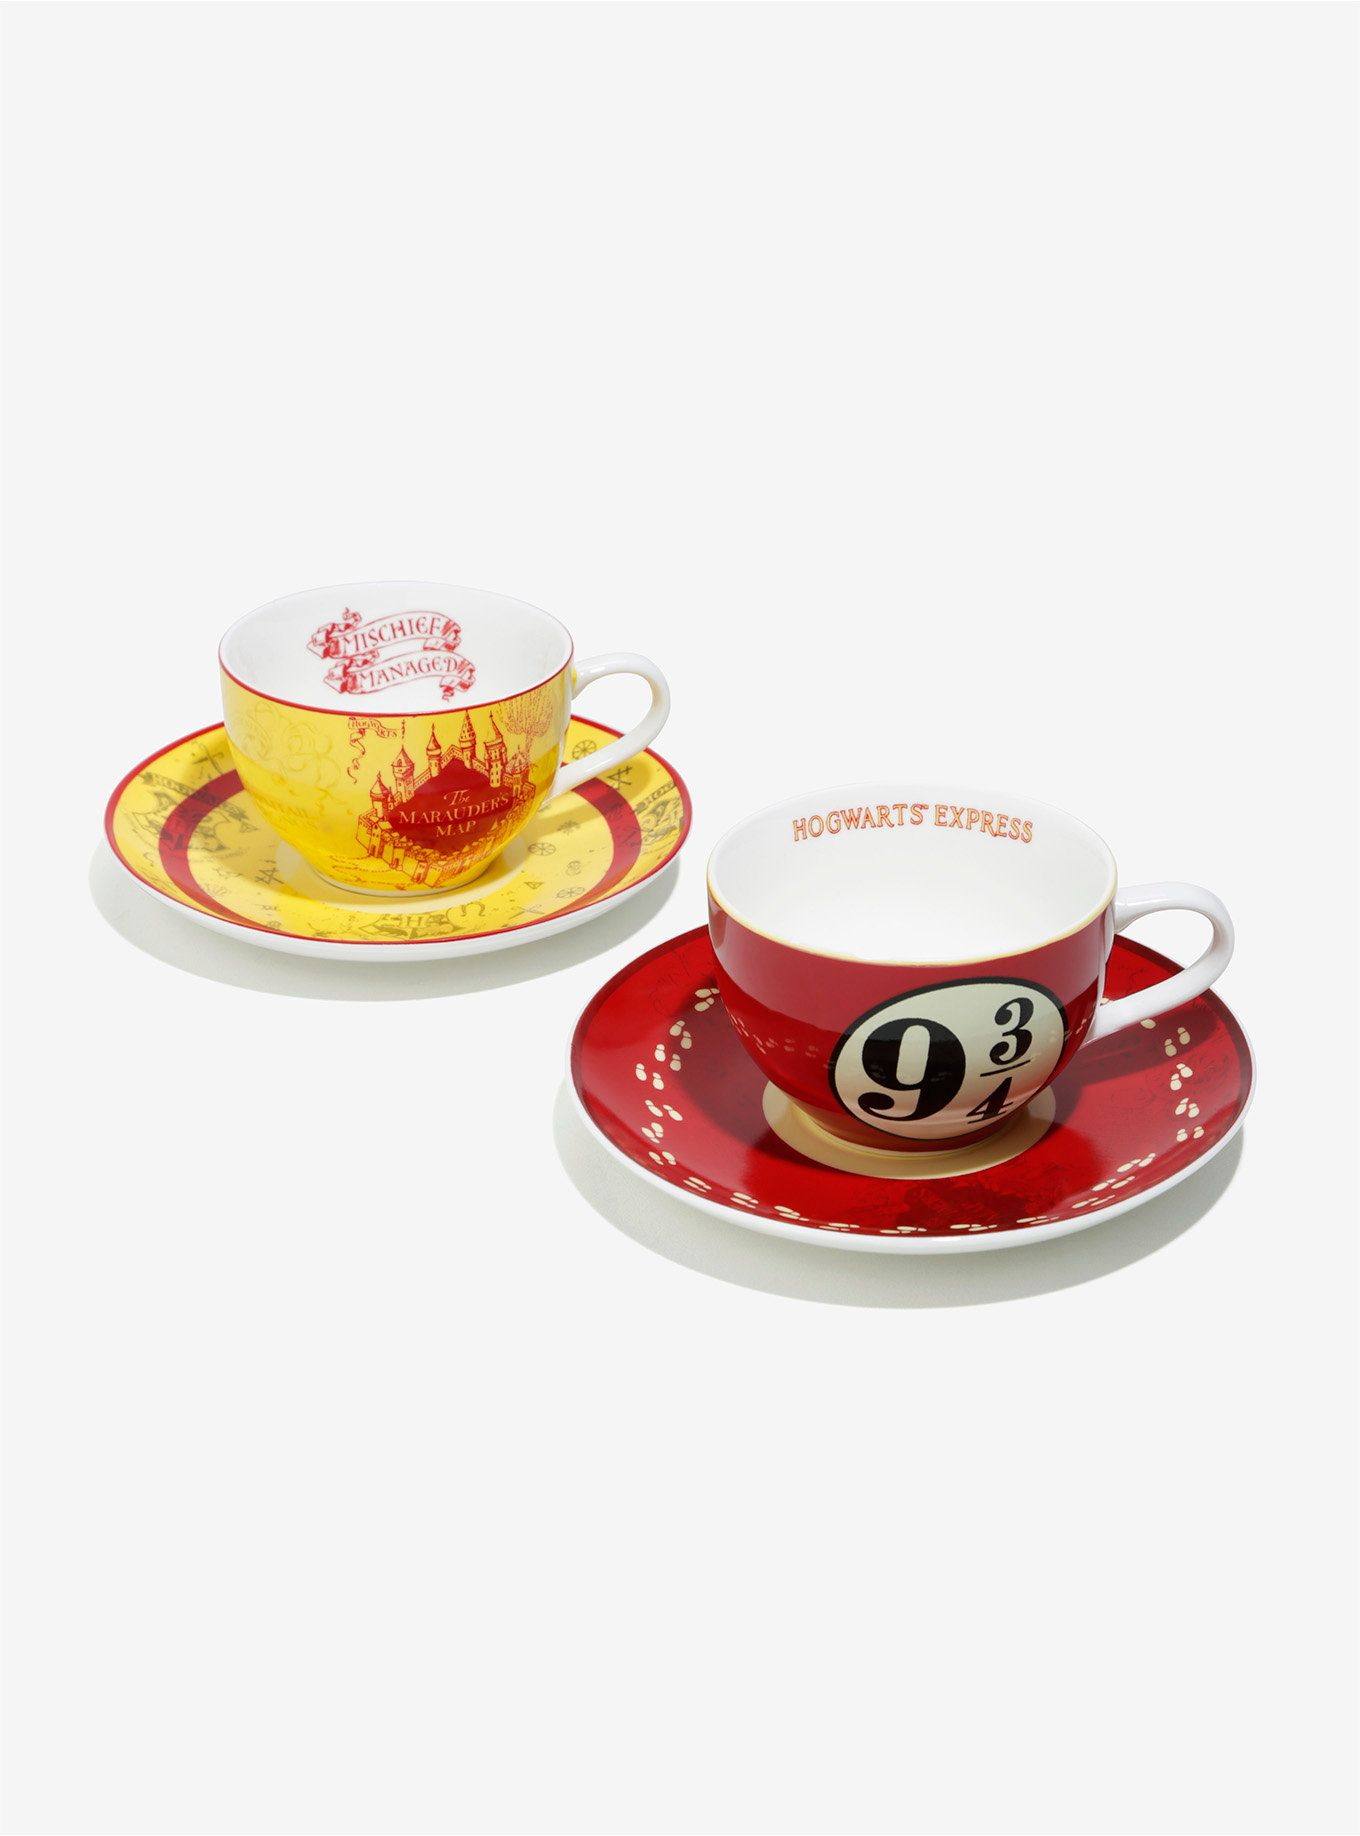 """Harry and co. might have been too busy fighting the Dark Lord to stop for tea. Make sure you carve out some time for yourself! This tea cup set features two tea cups and matching saucers with a Marauder's Map and Platform 9 3/4 theme, so you and your bestie can talk over a nice cuppa.<br><div><ul><li style=""""list-style-position: inside !important; list-style-type: disc !important"""">6.7 oz.</li><li style=""""list-sty..."""